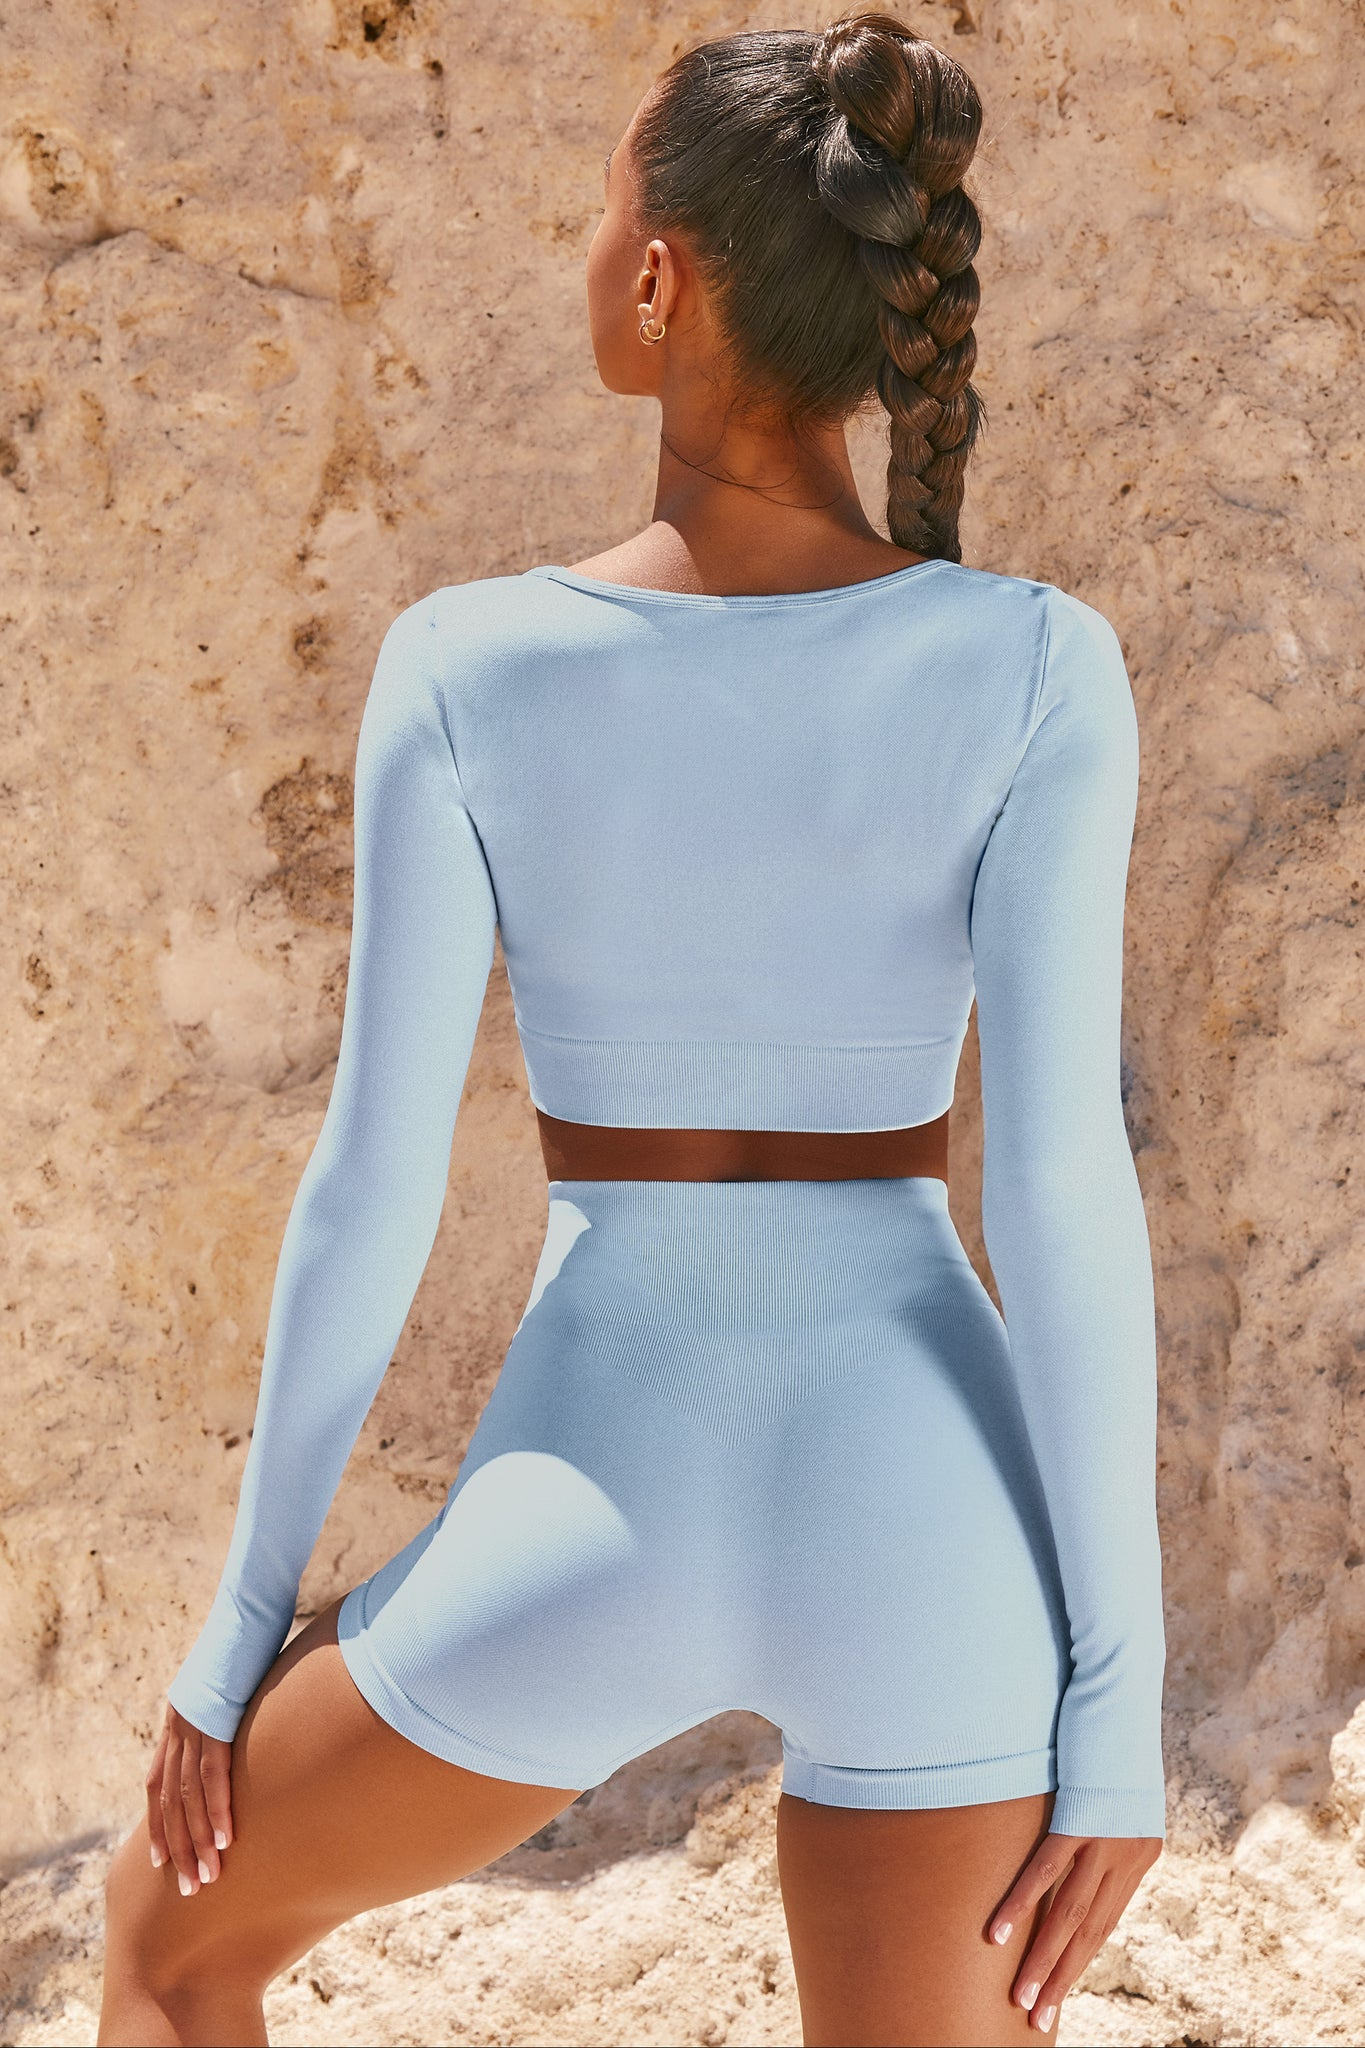 Plain light blue seamless long sleeve crop top with low scoop neck and thumb holes. Image 3 of 6.